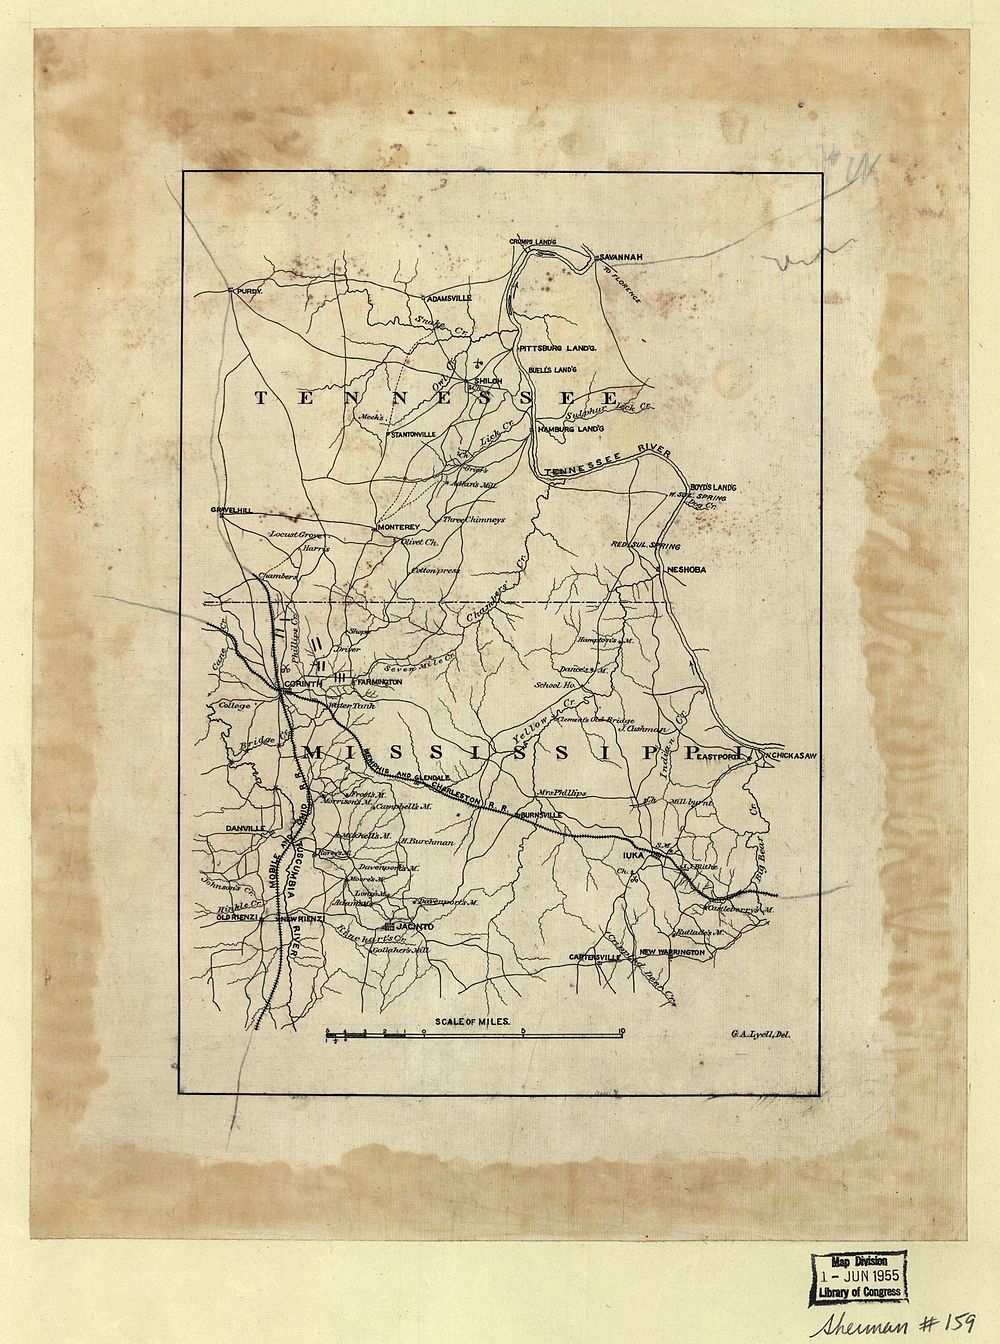 1862 map showing the location of Danville